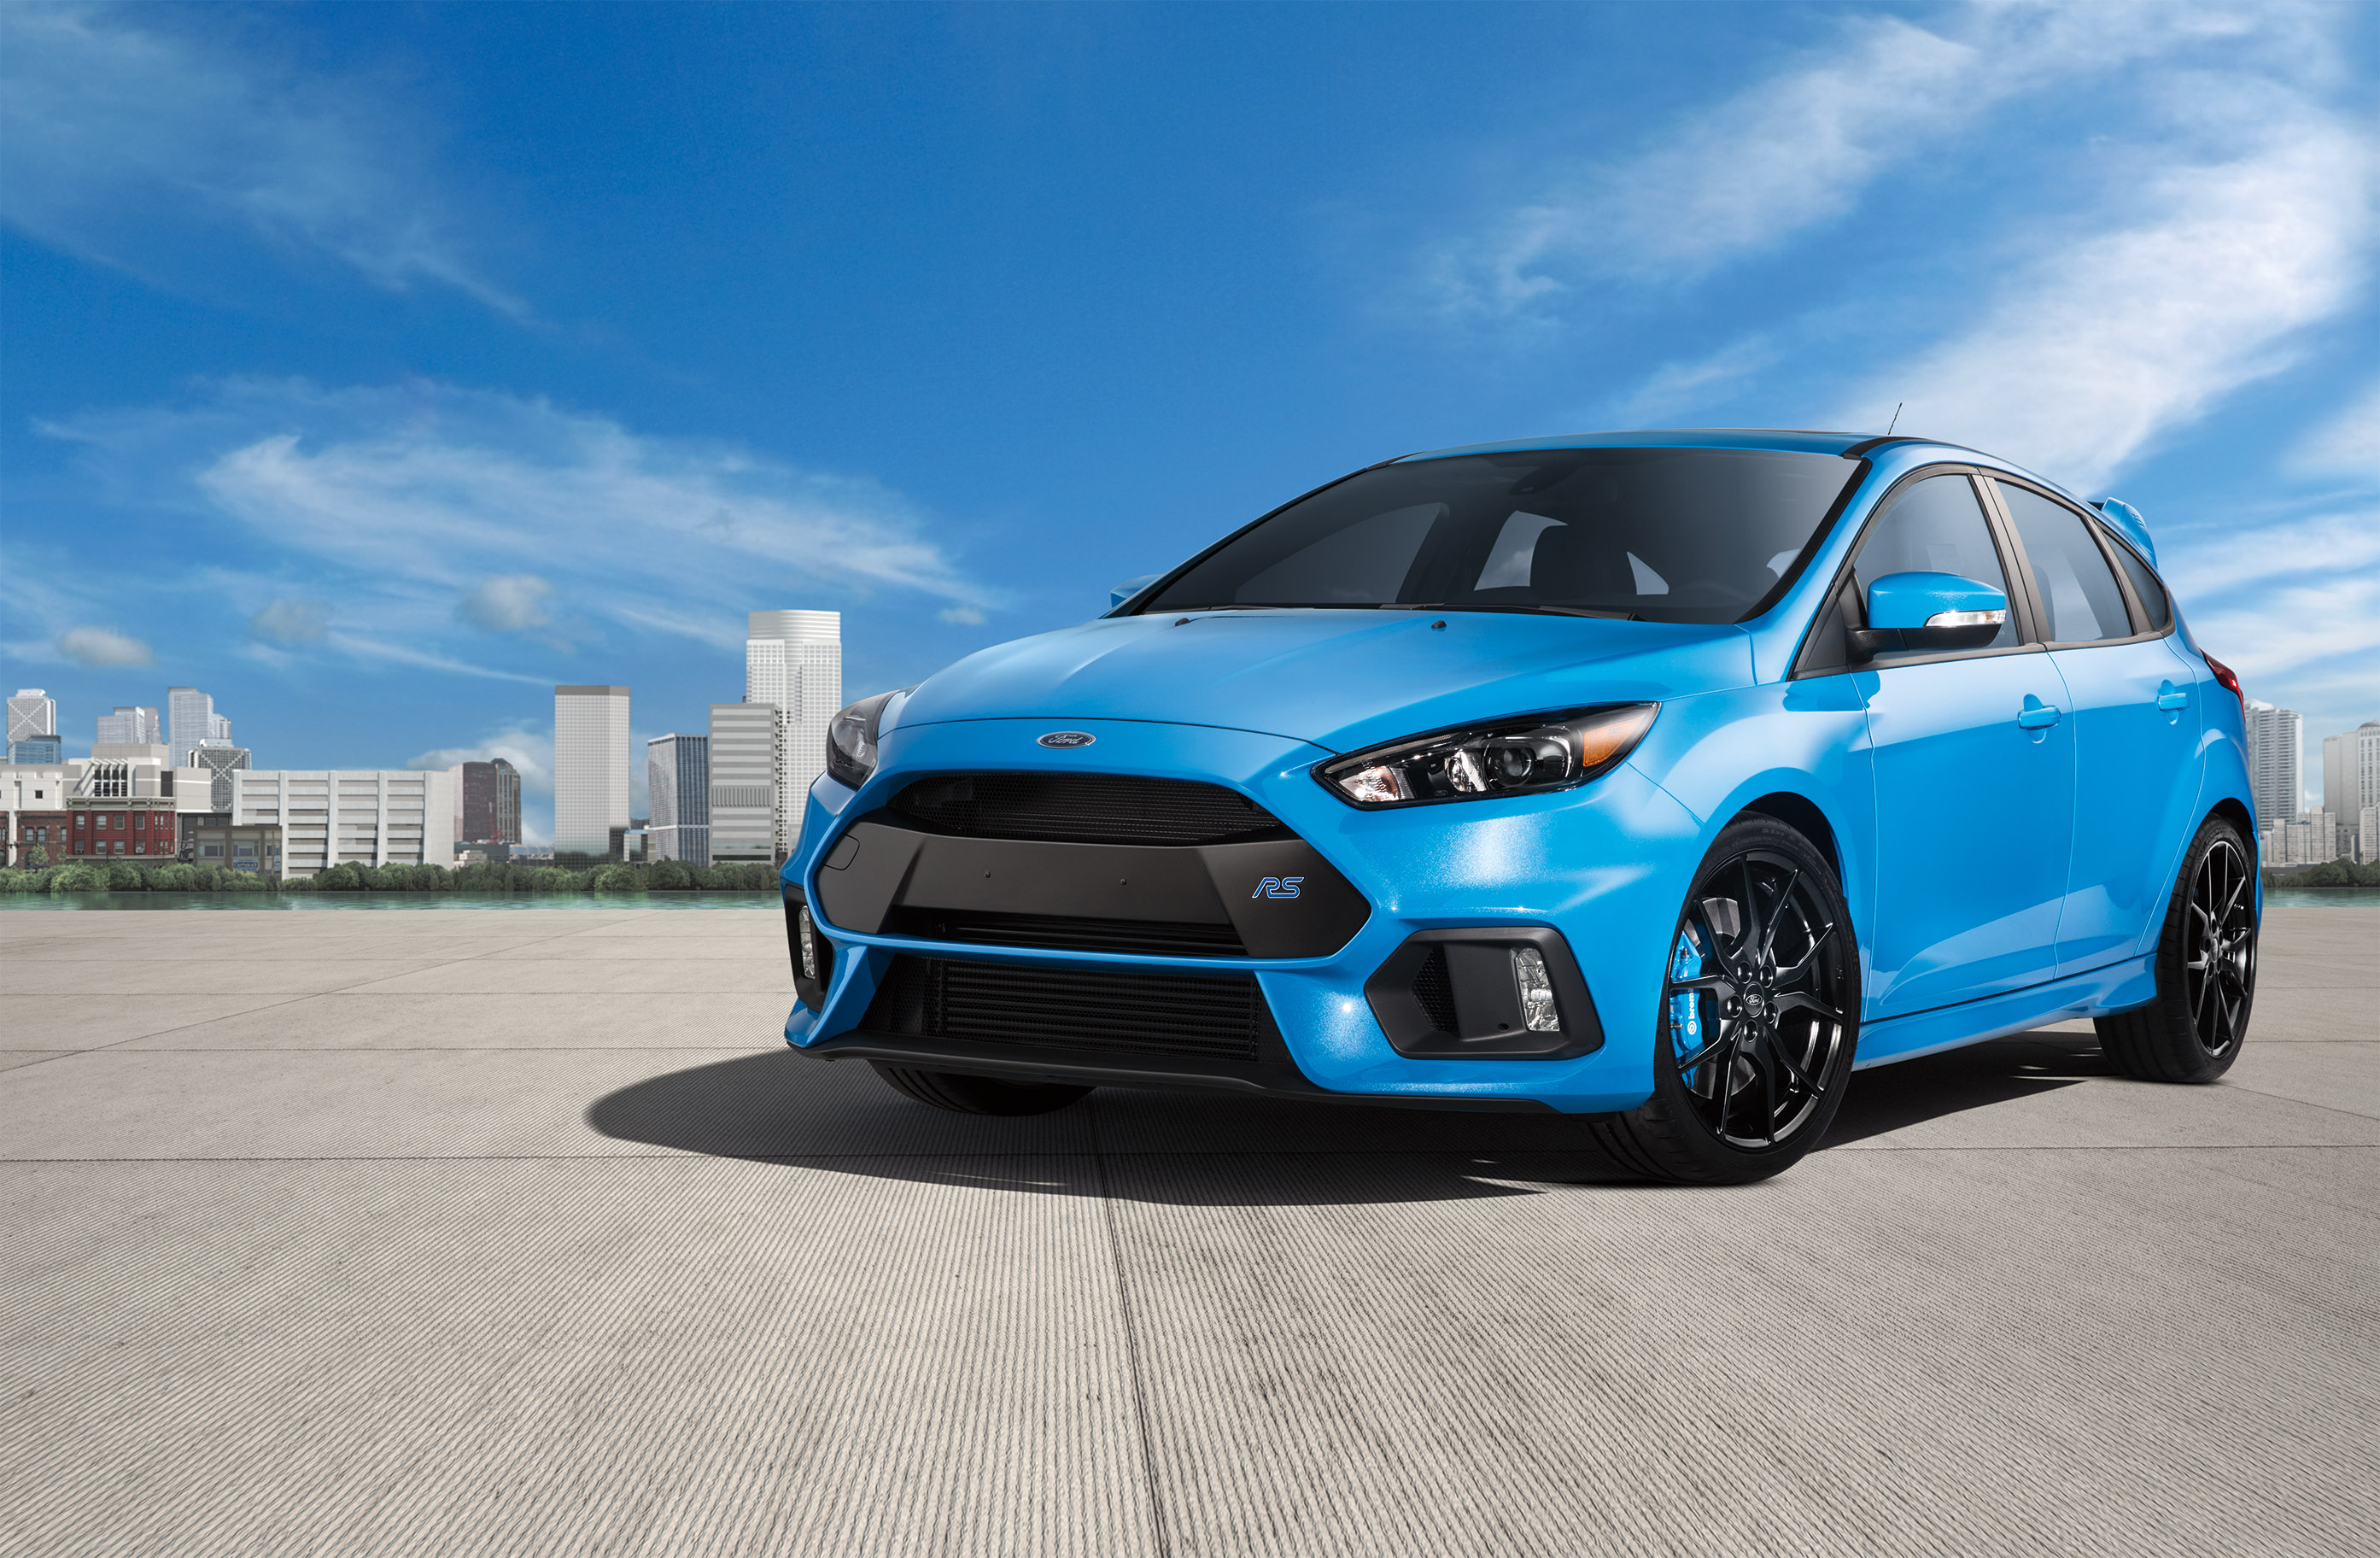 Friday Excuse To Go Home Early And Drink: Rest In Peace, Ford Focus RS